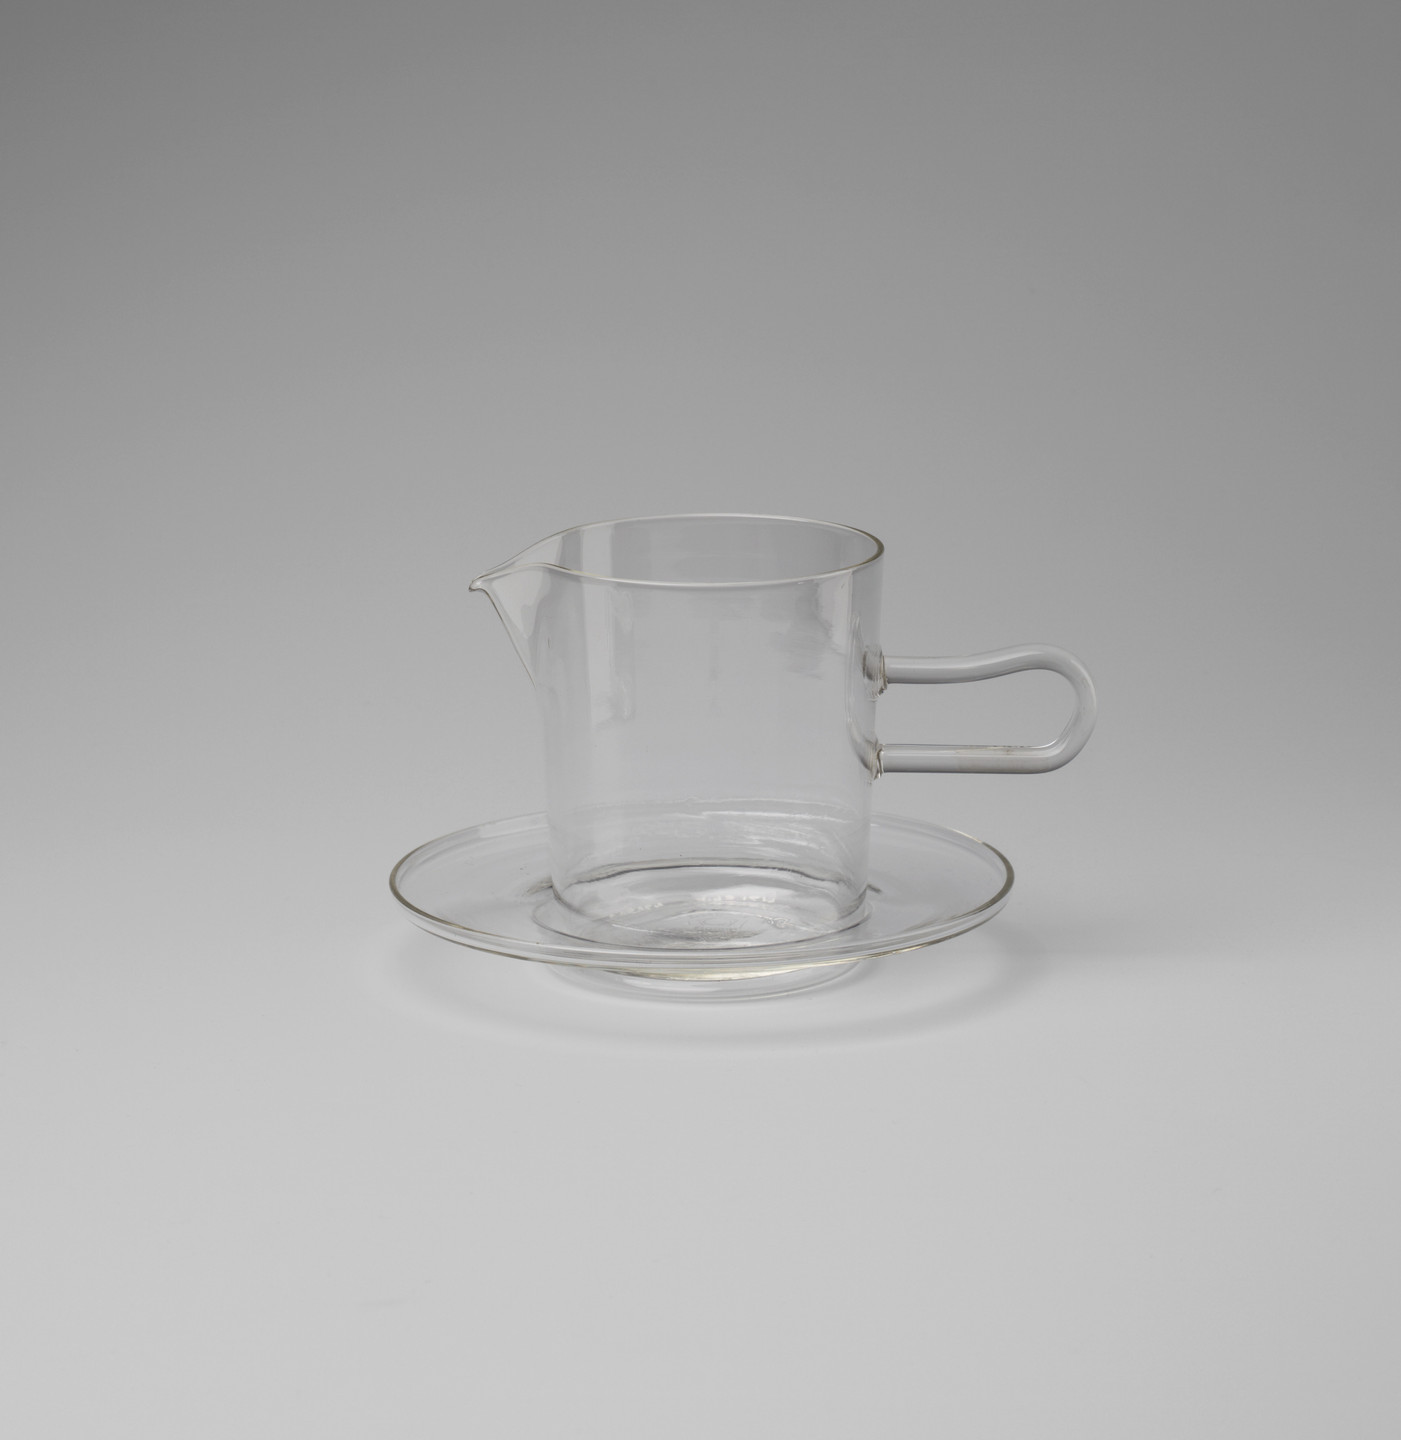 Wilhelm Wagenfeld. Pitcher and Saucer. 1932